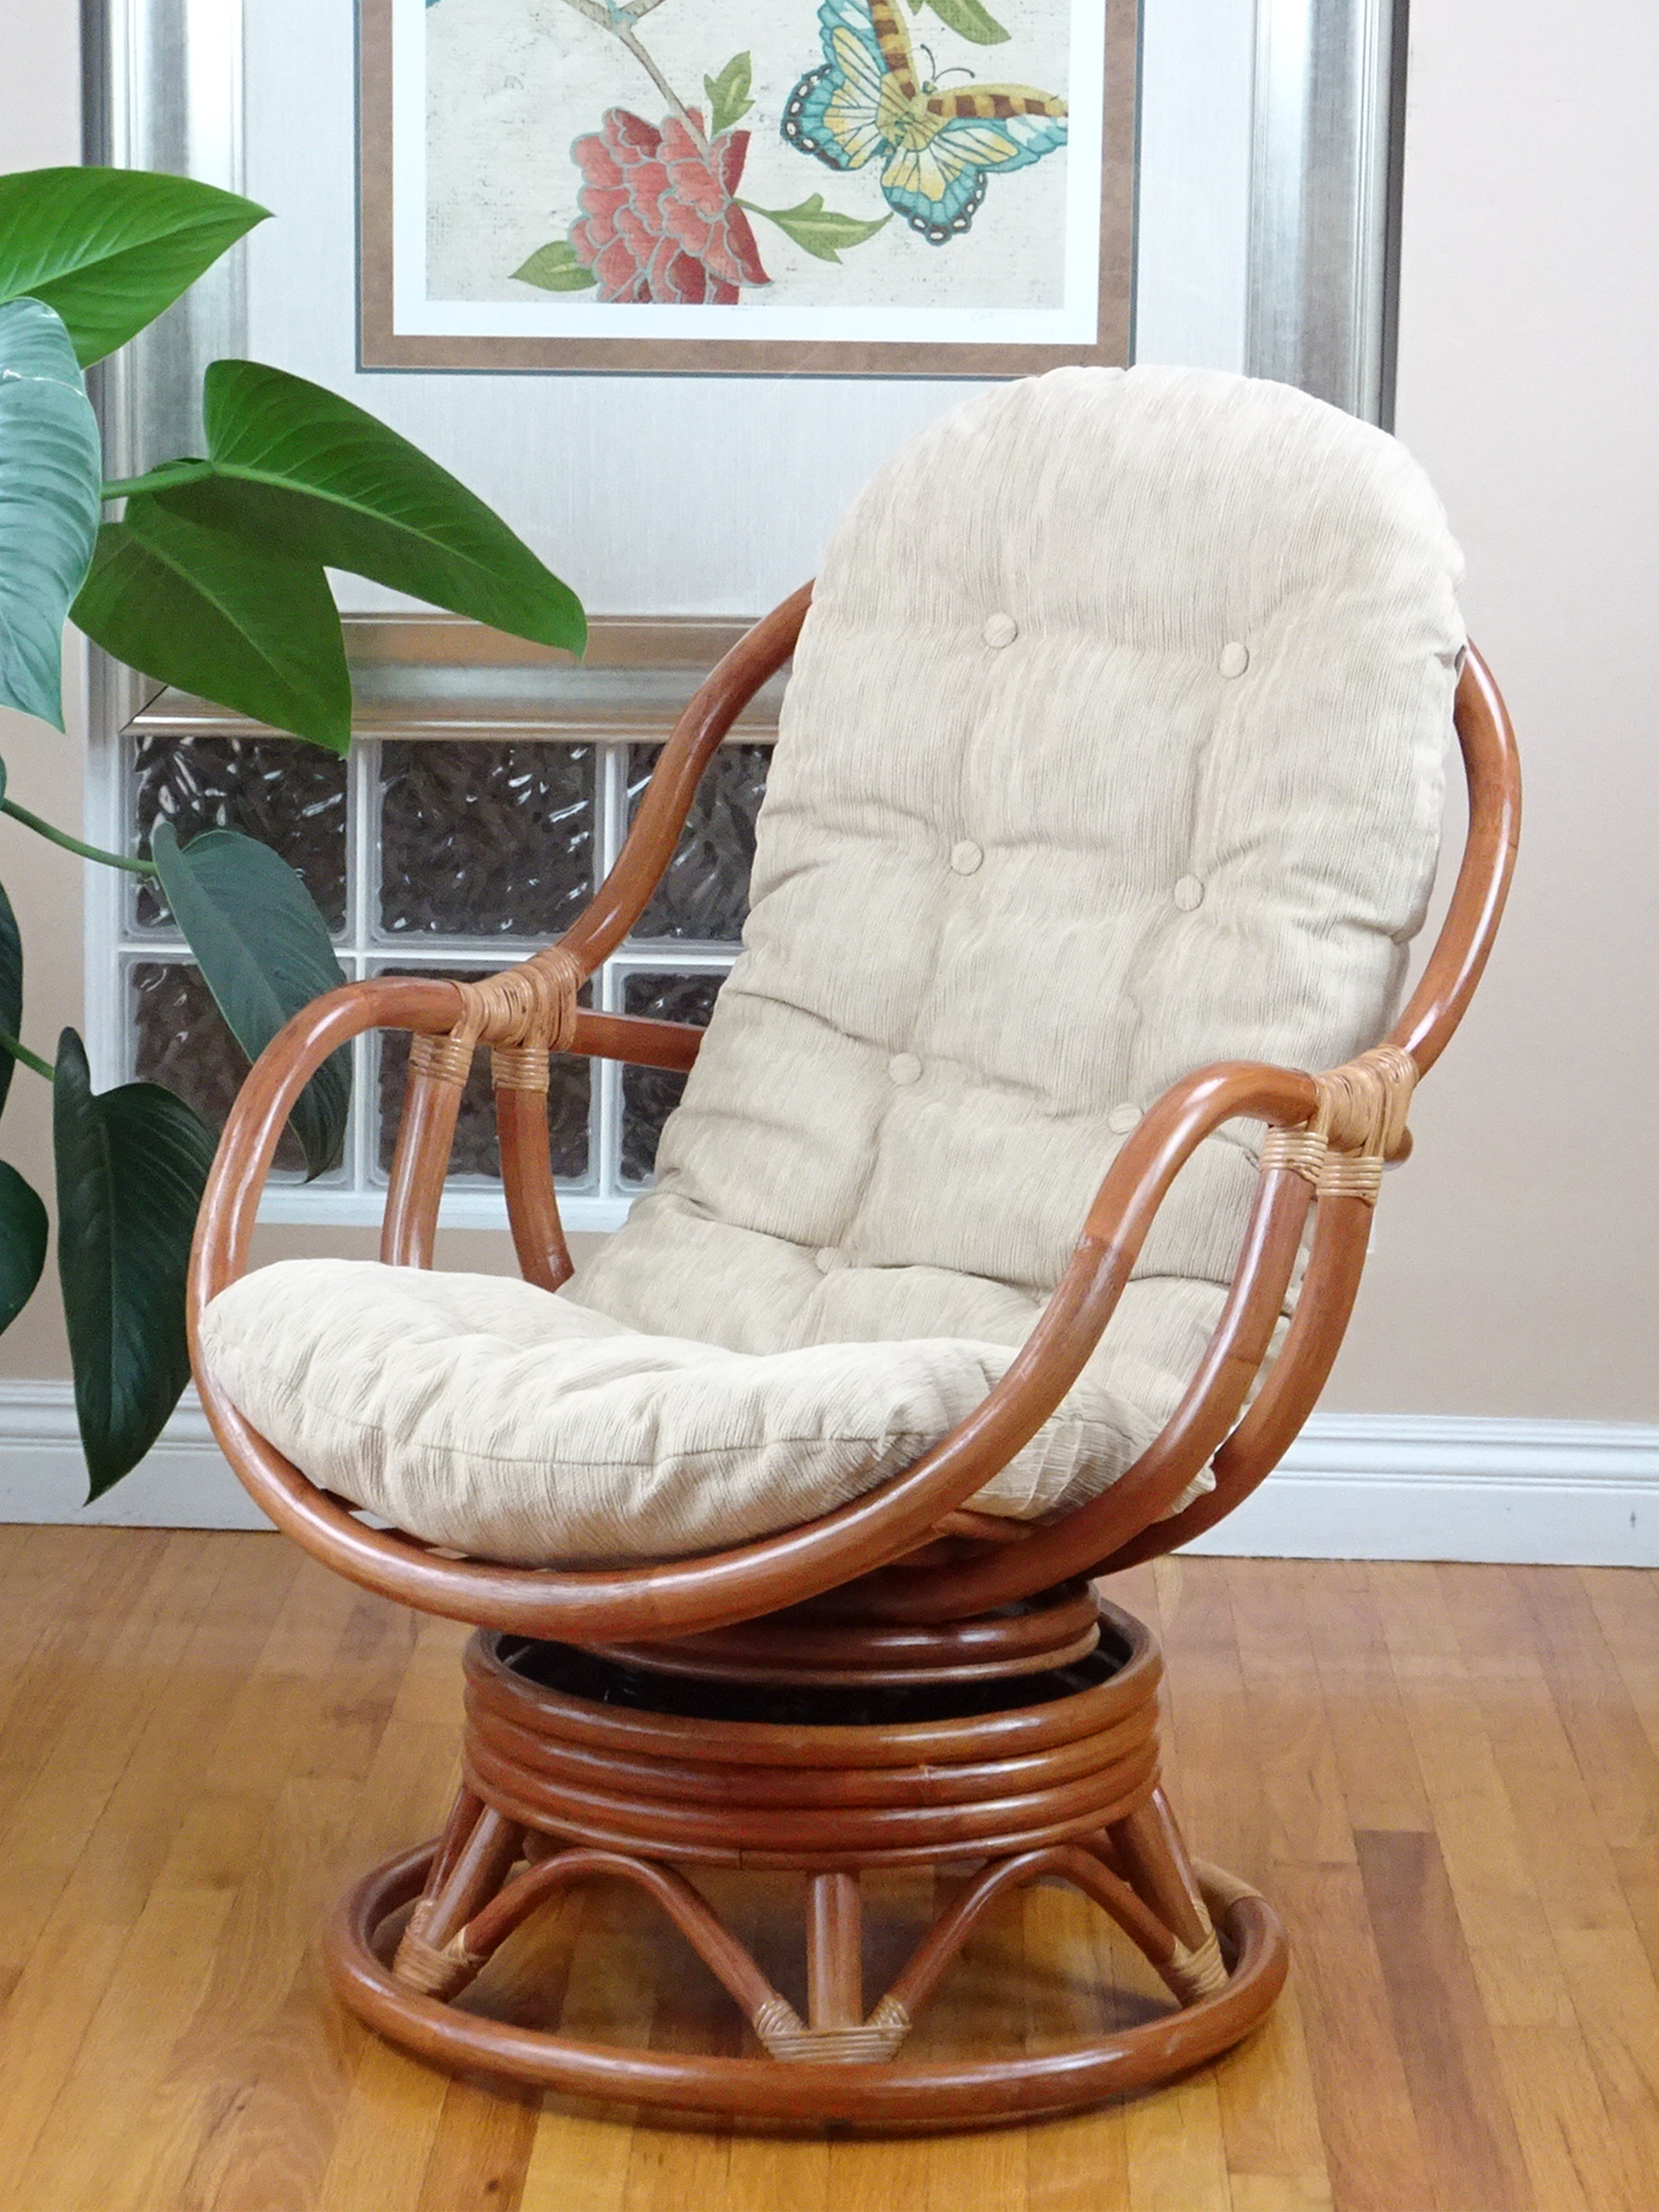 Bali Chair With Cream Cushion With Regard To Rocking Chairs, Cream And Brown (View 19 of 20)